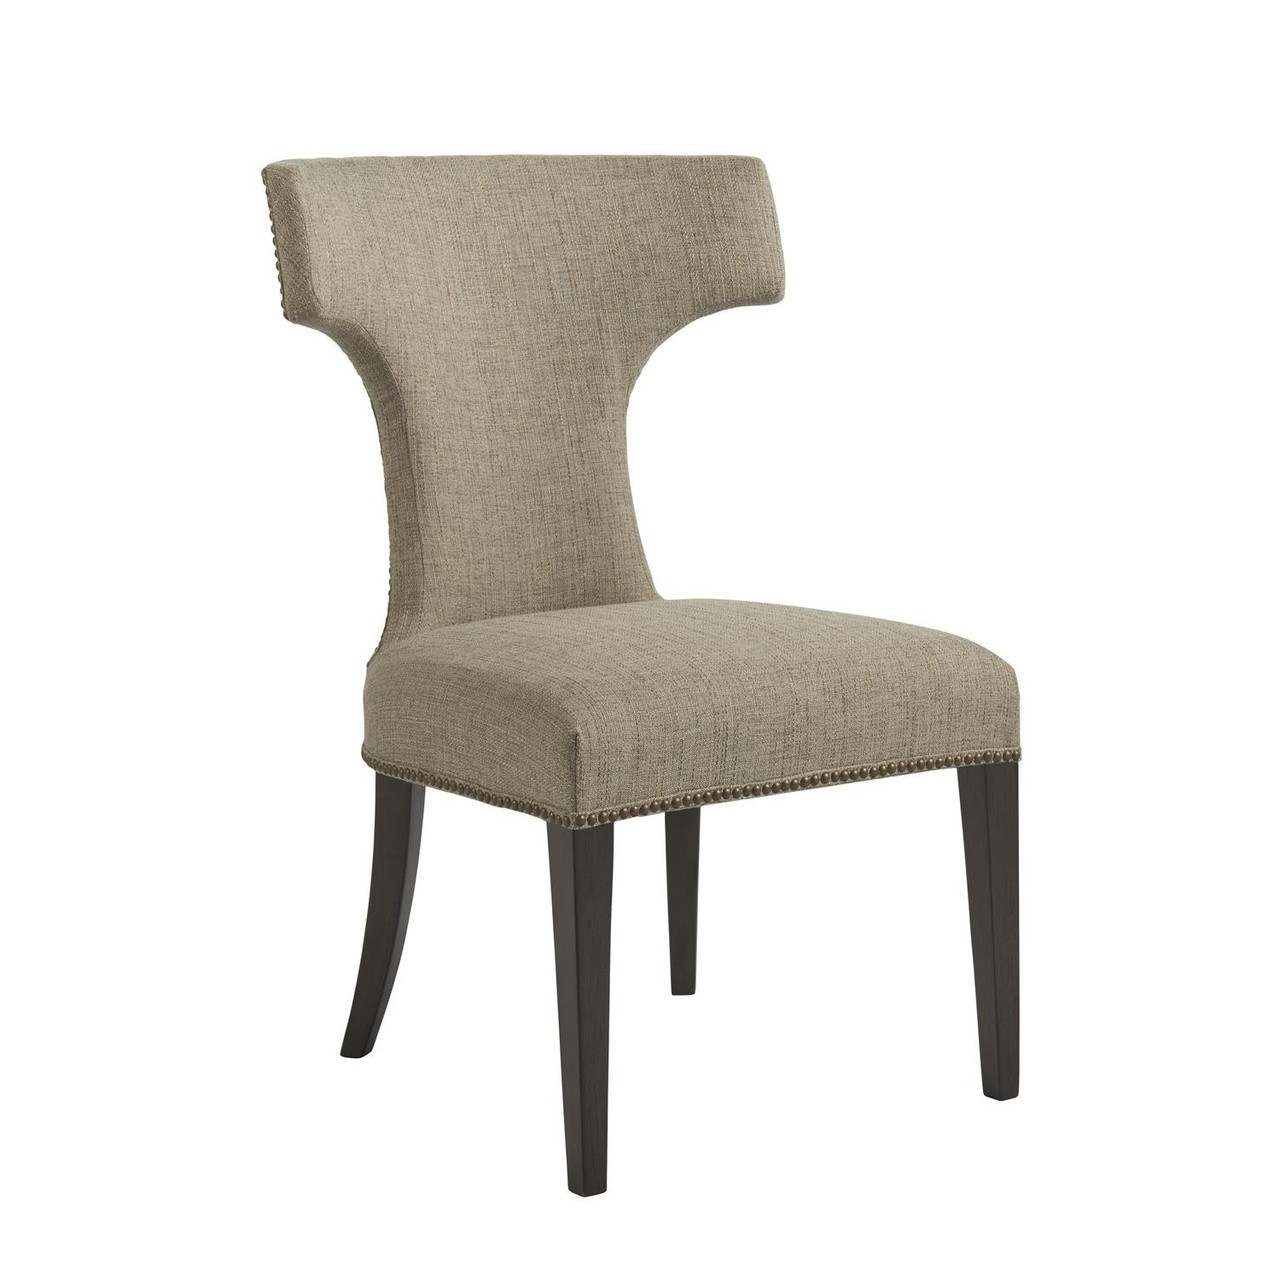 Curved Back Chair Soliloquy Curved Back Upholstered Dining Chair